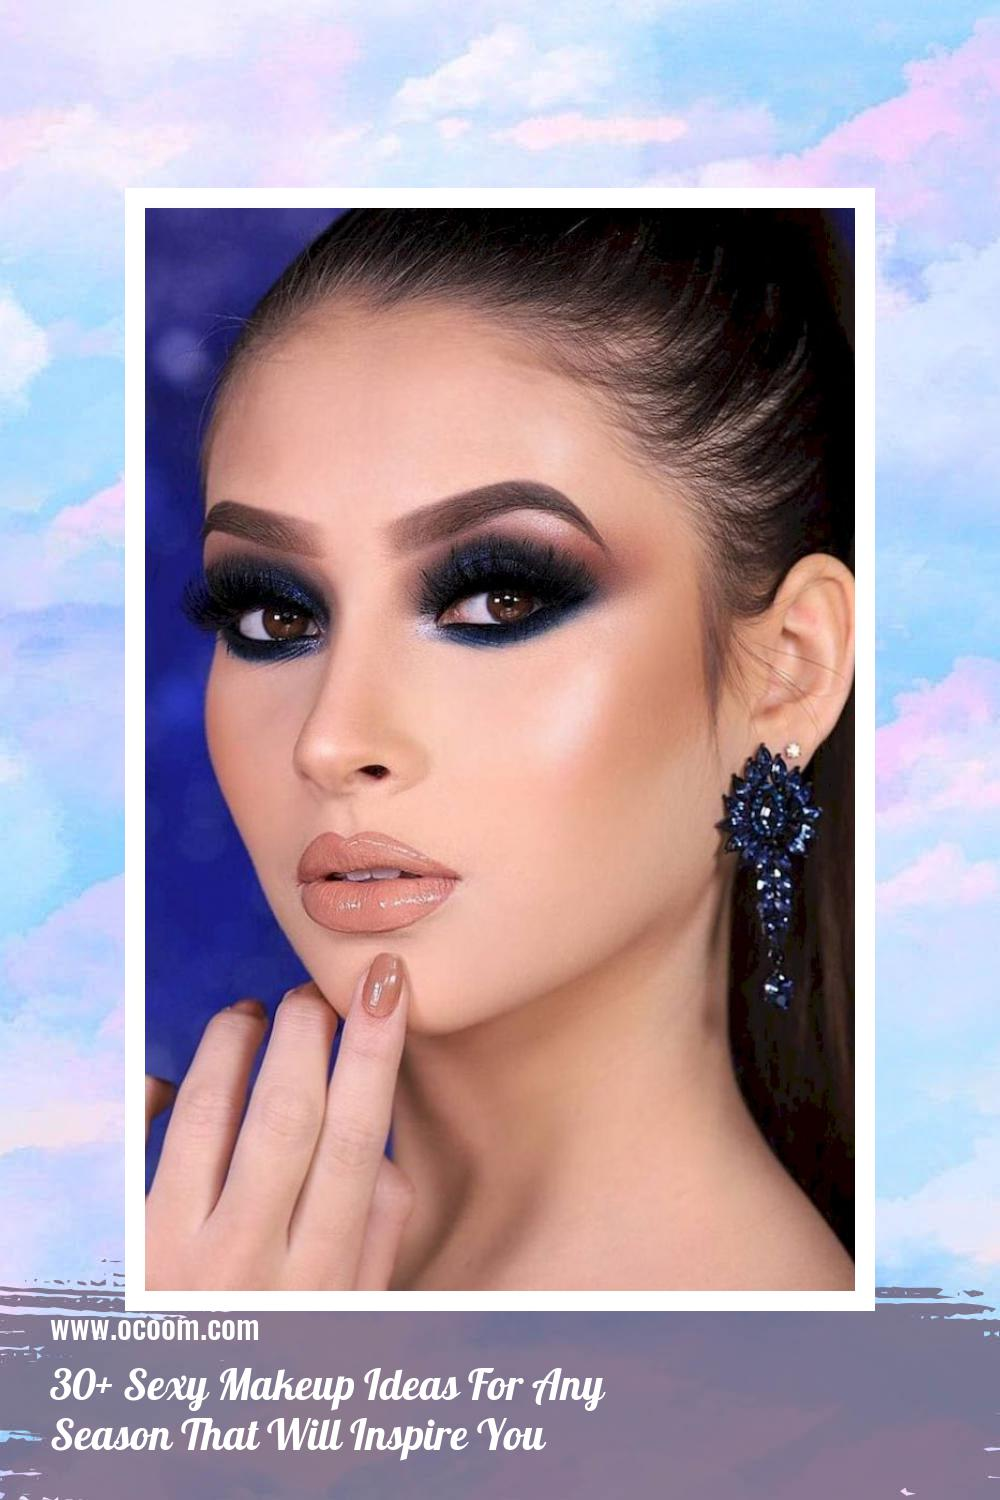 30+ Sexy Makeup Ideas For Any Season That Will Inspire You 29